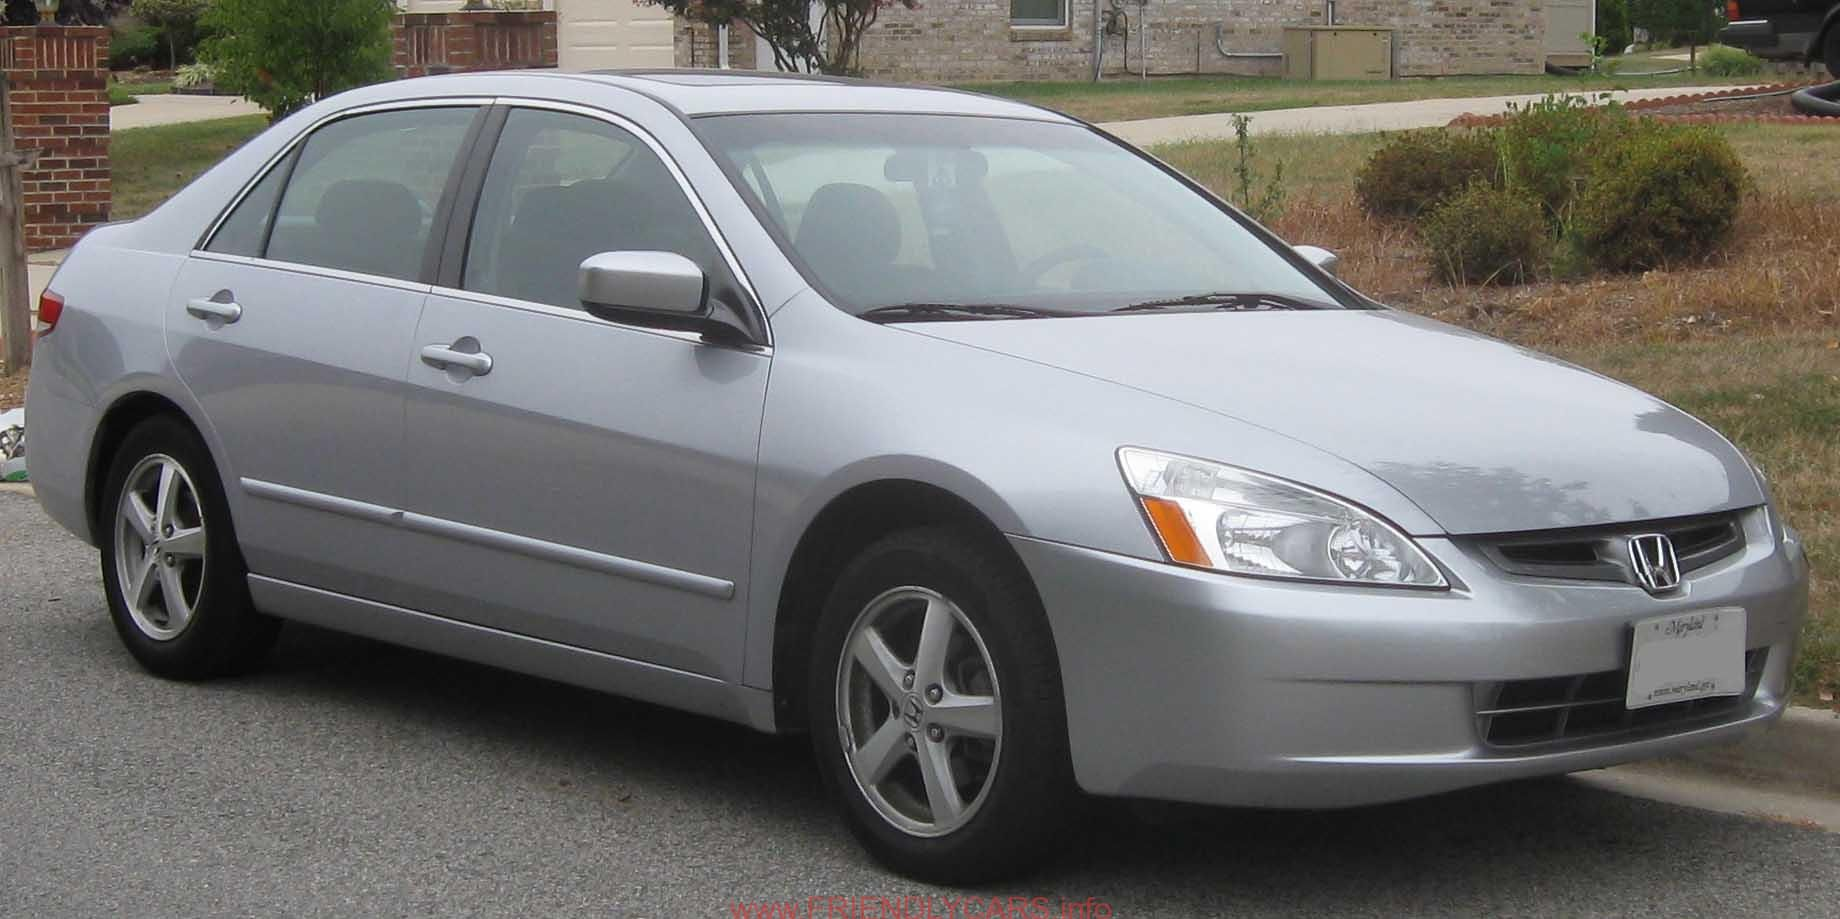 Awesome Honda Accord 2006 Modified Car Images Hd North America Seventh Generation Wikipedia The